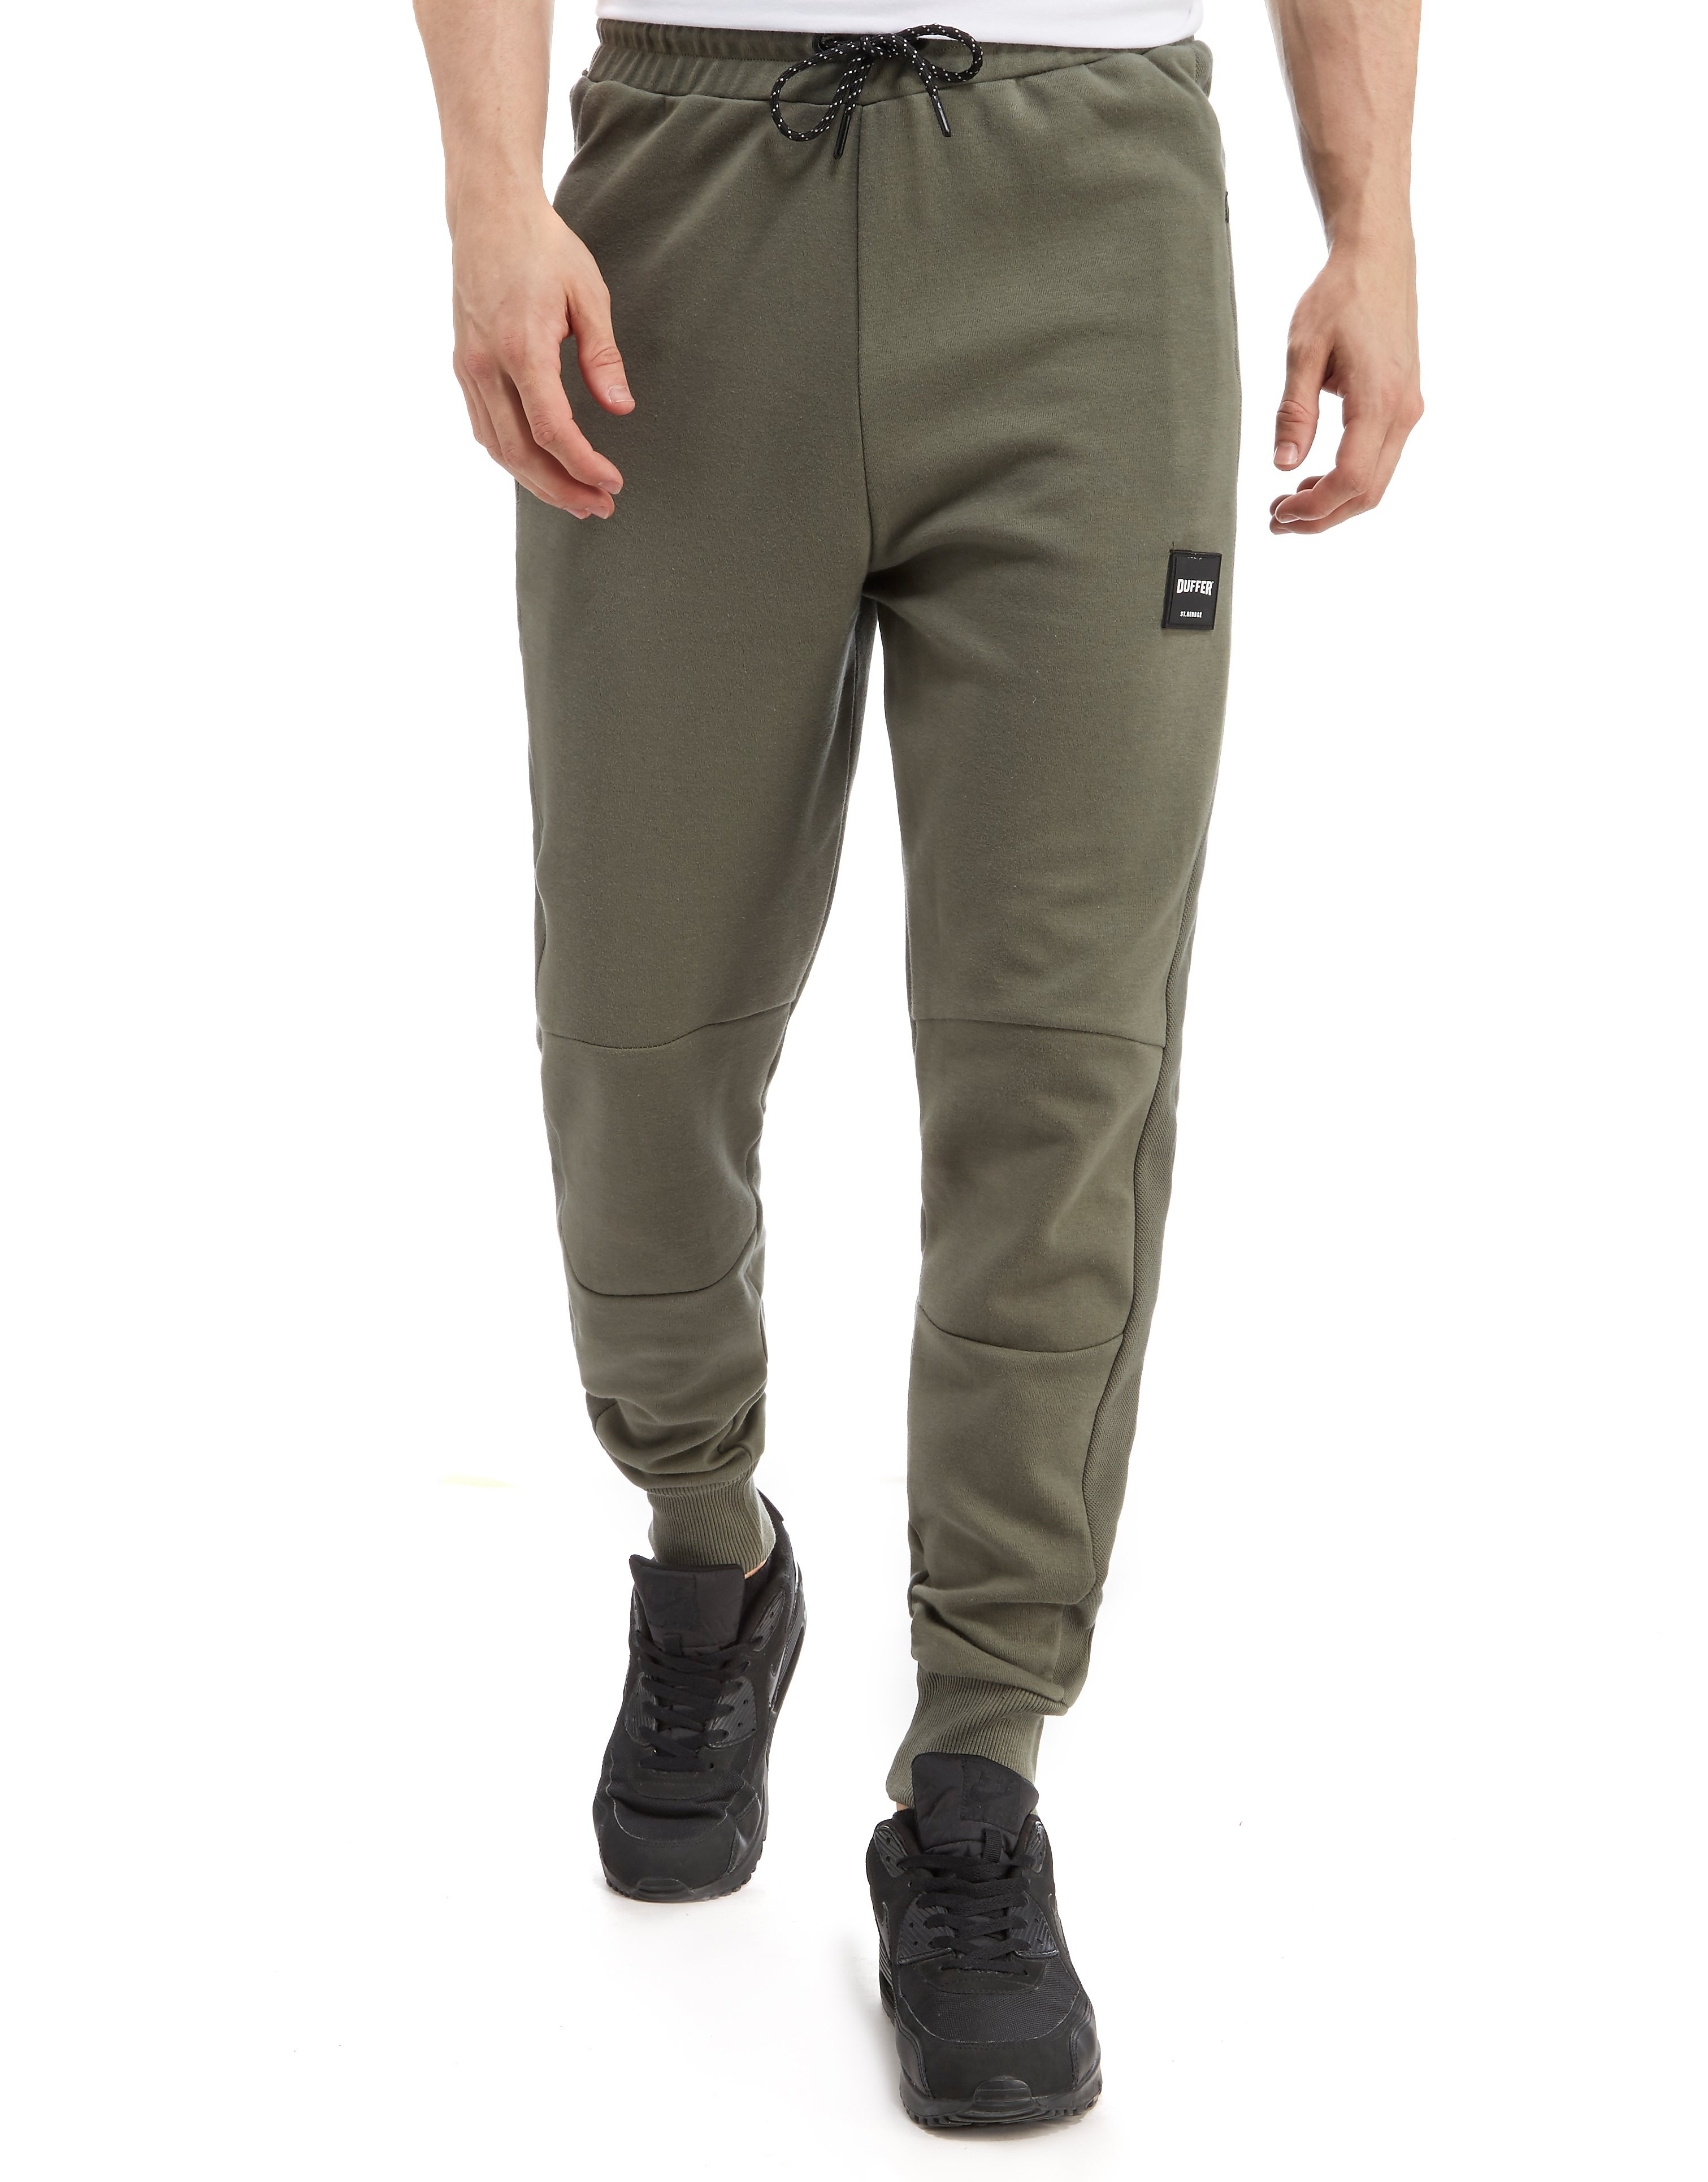 Duffer of St George Junction Jogging Pants